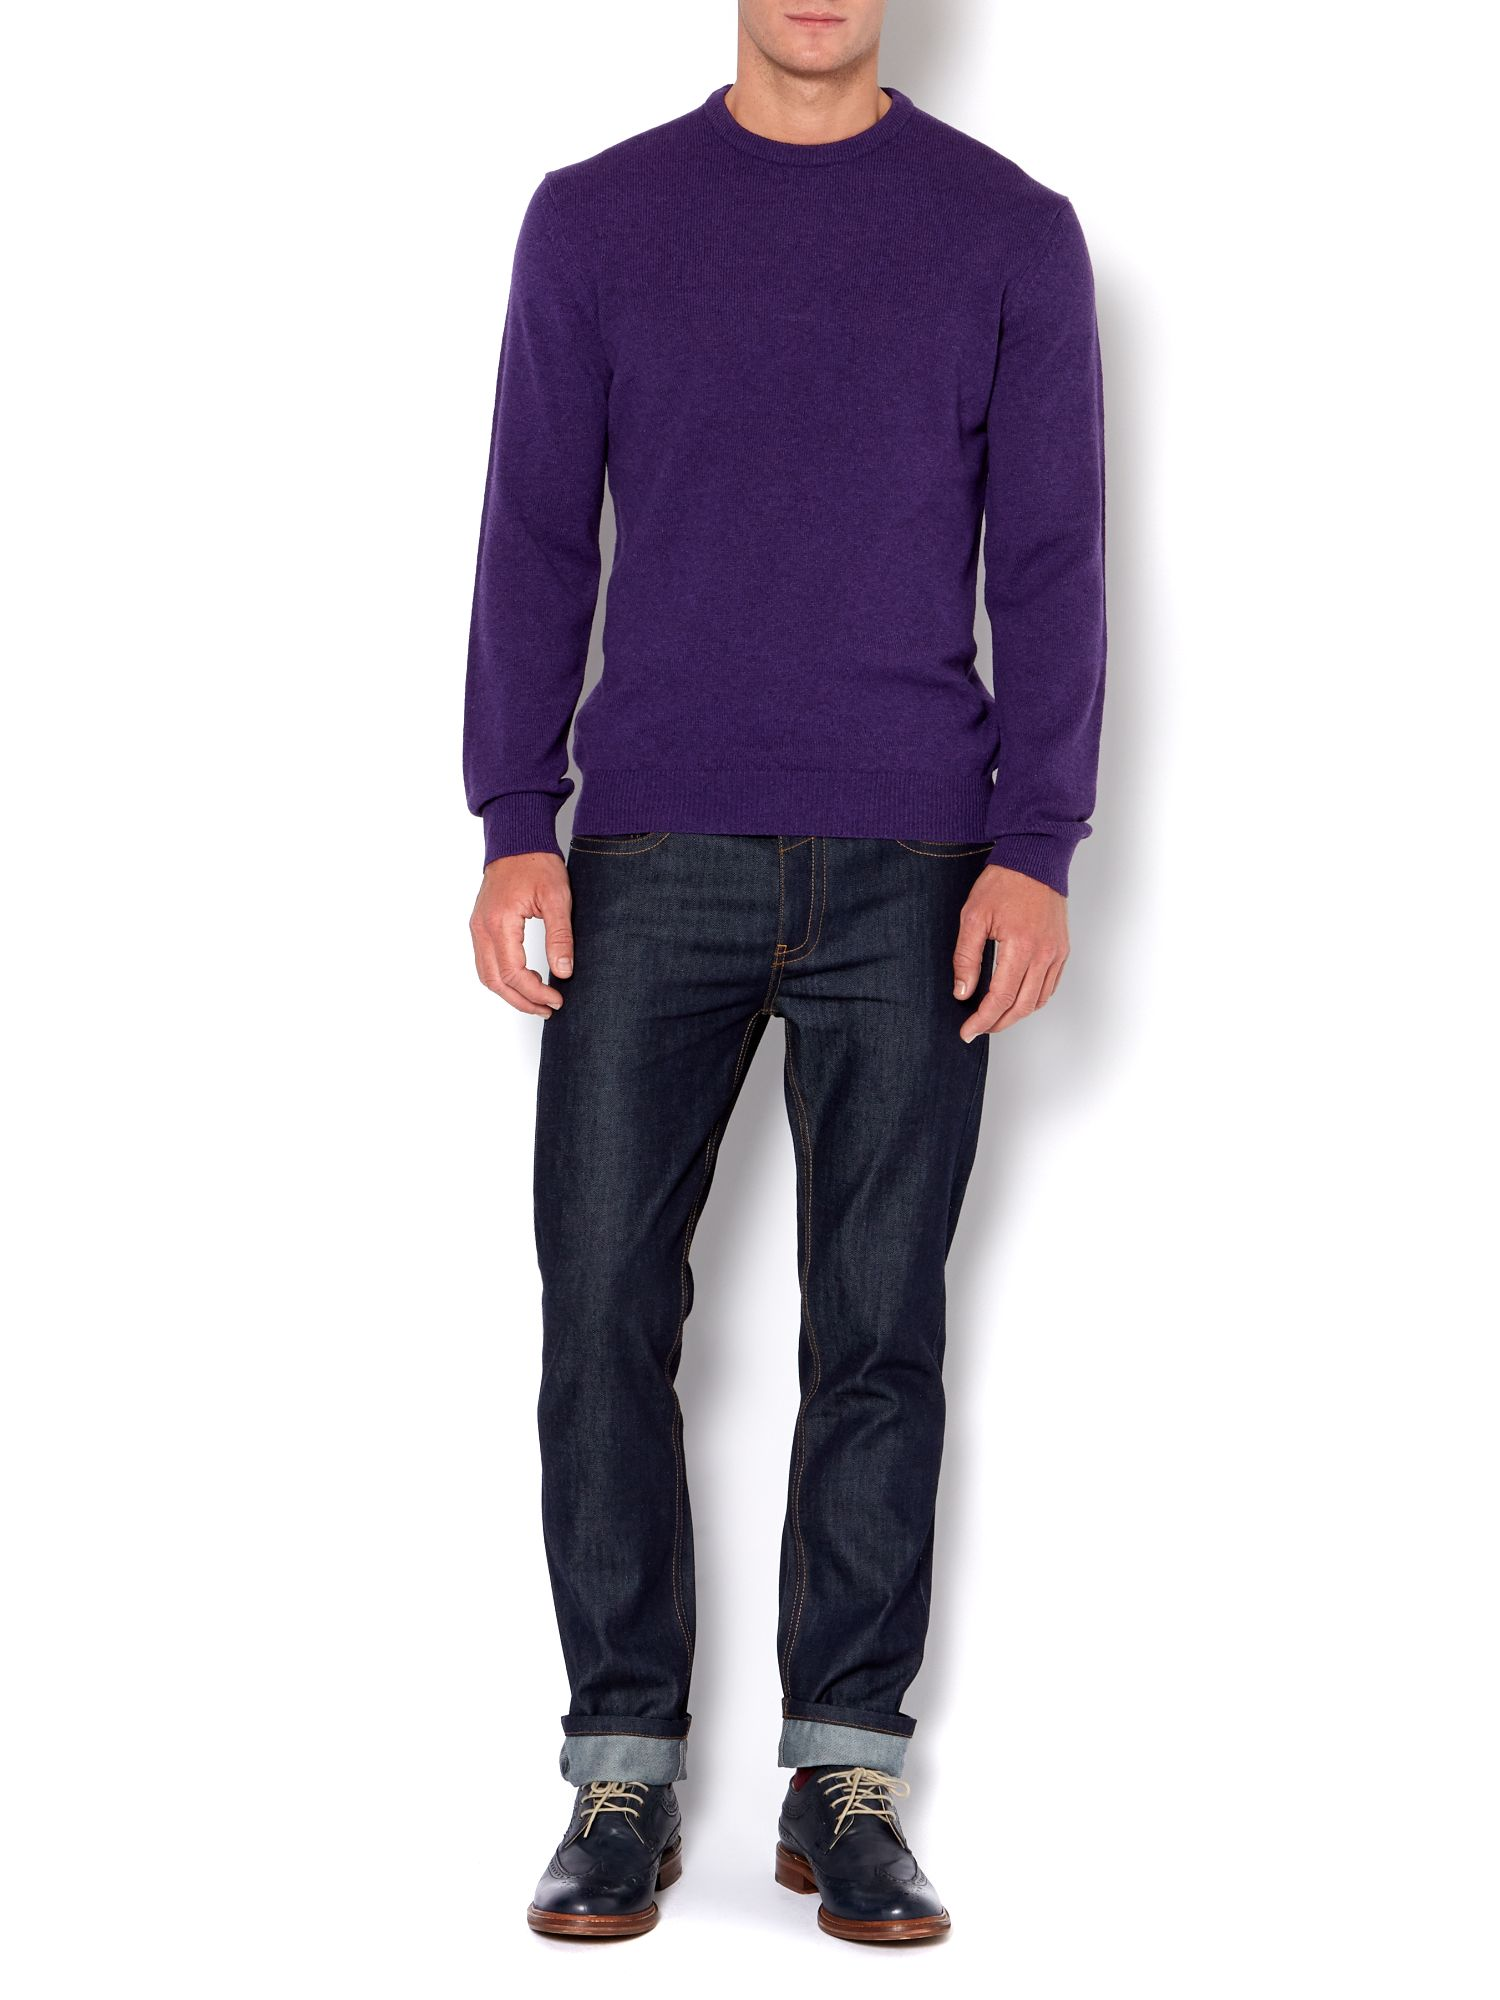 Hawick made in Scotland lambswool crew neck